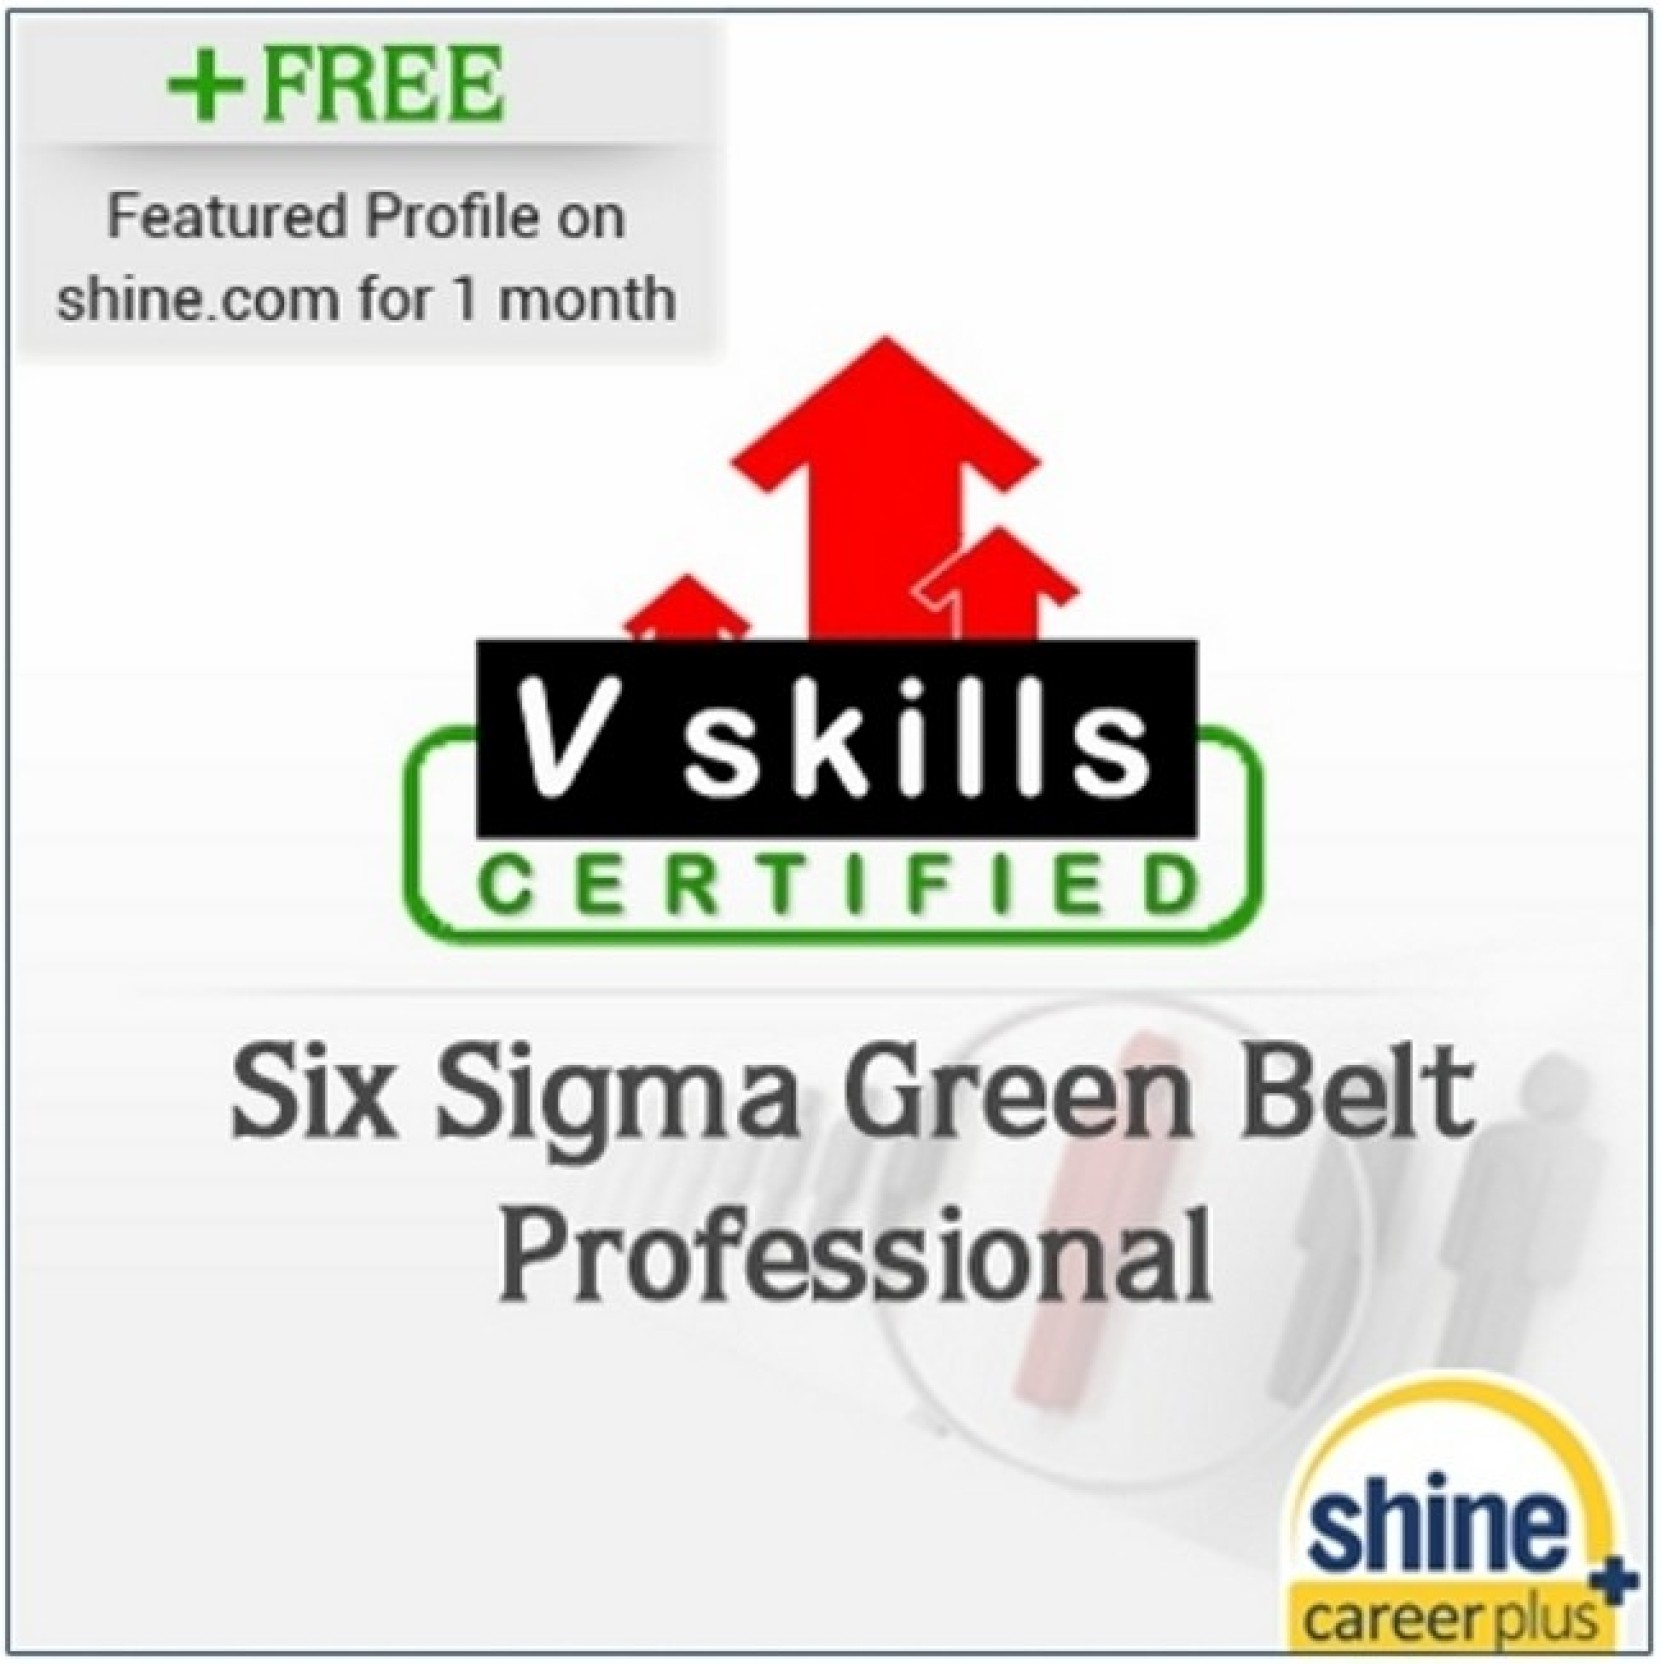 Careerplus v skills certified six sigma green belt professional six sigma green belt professional certification course wishlist xflitez Choice Image